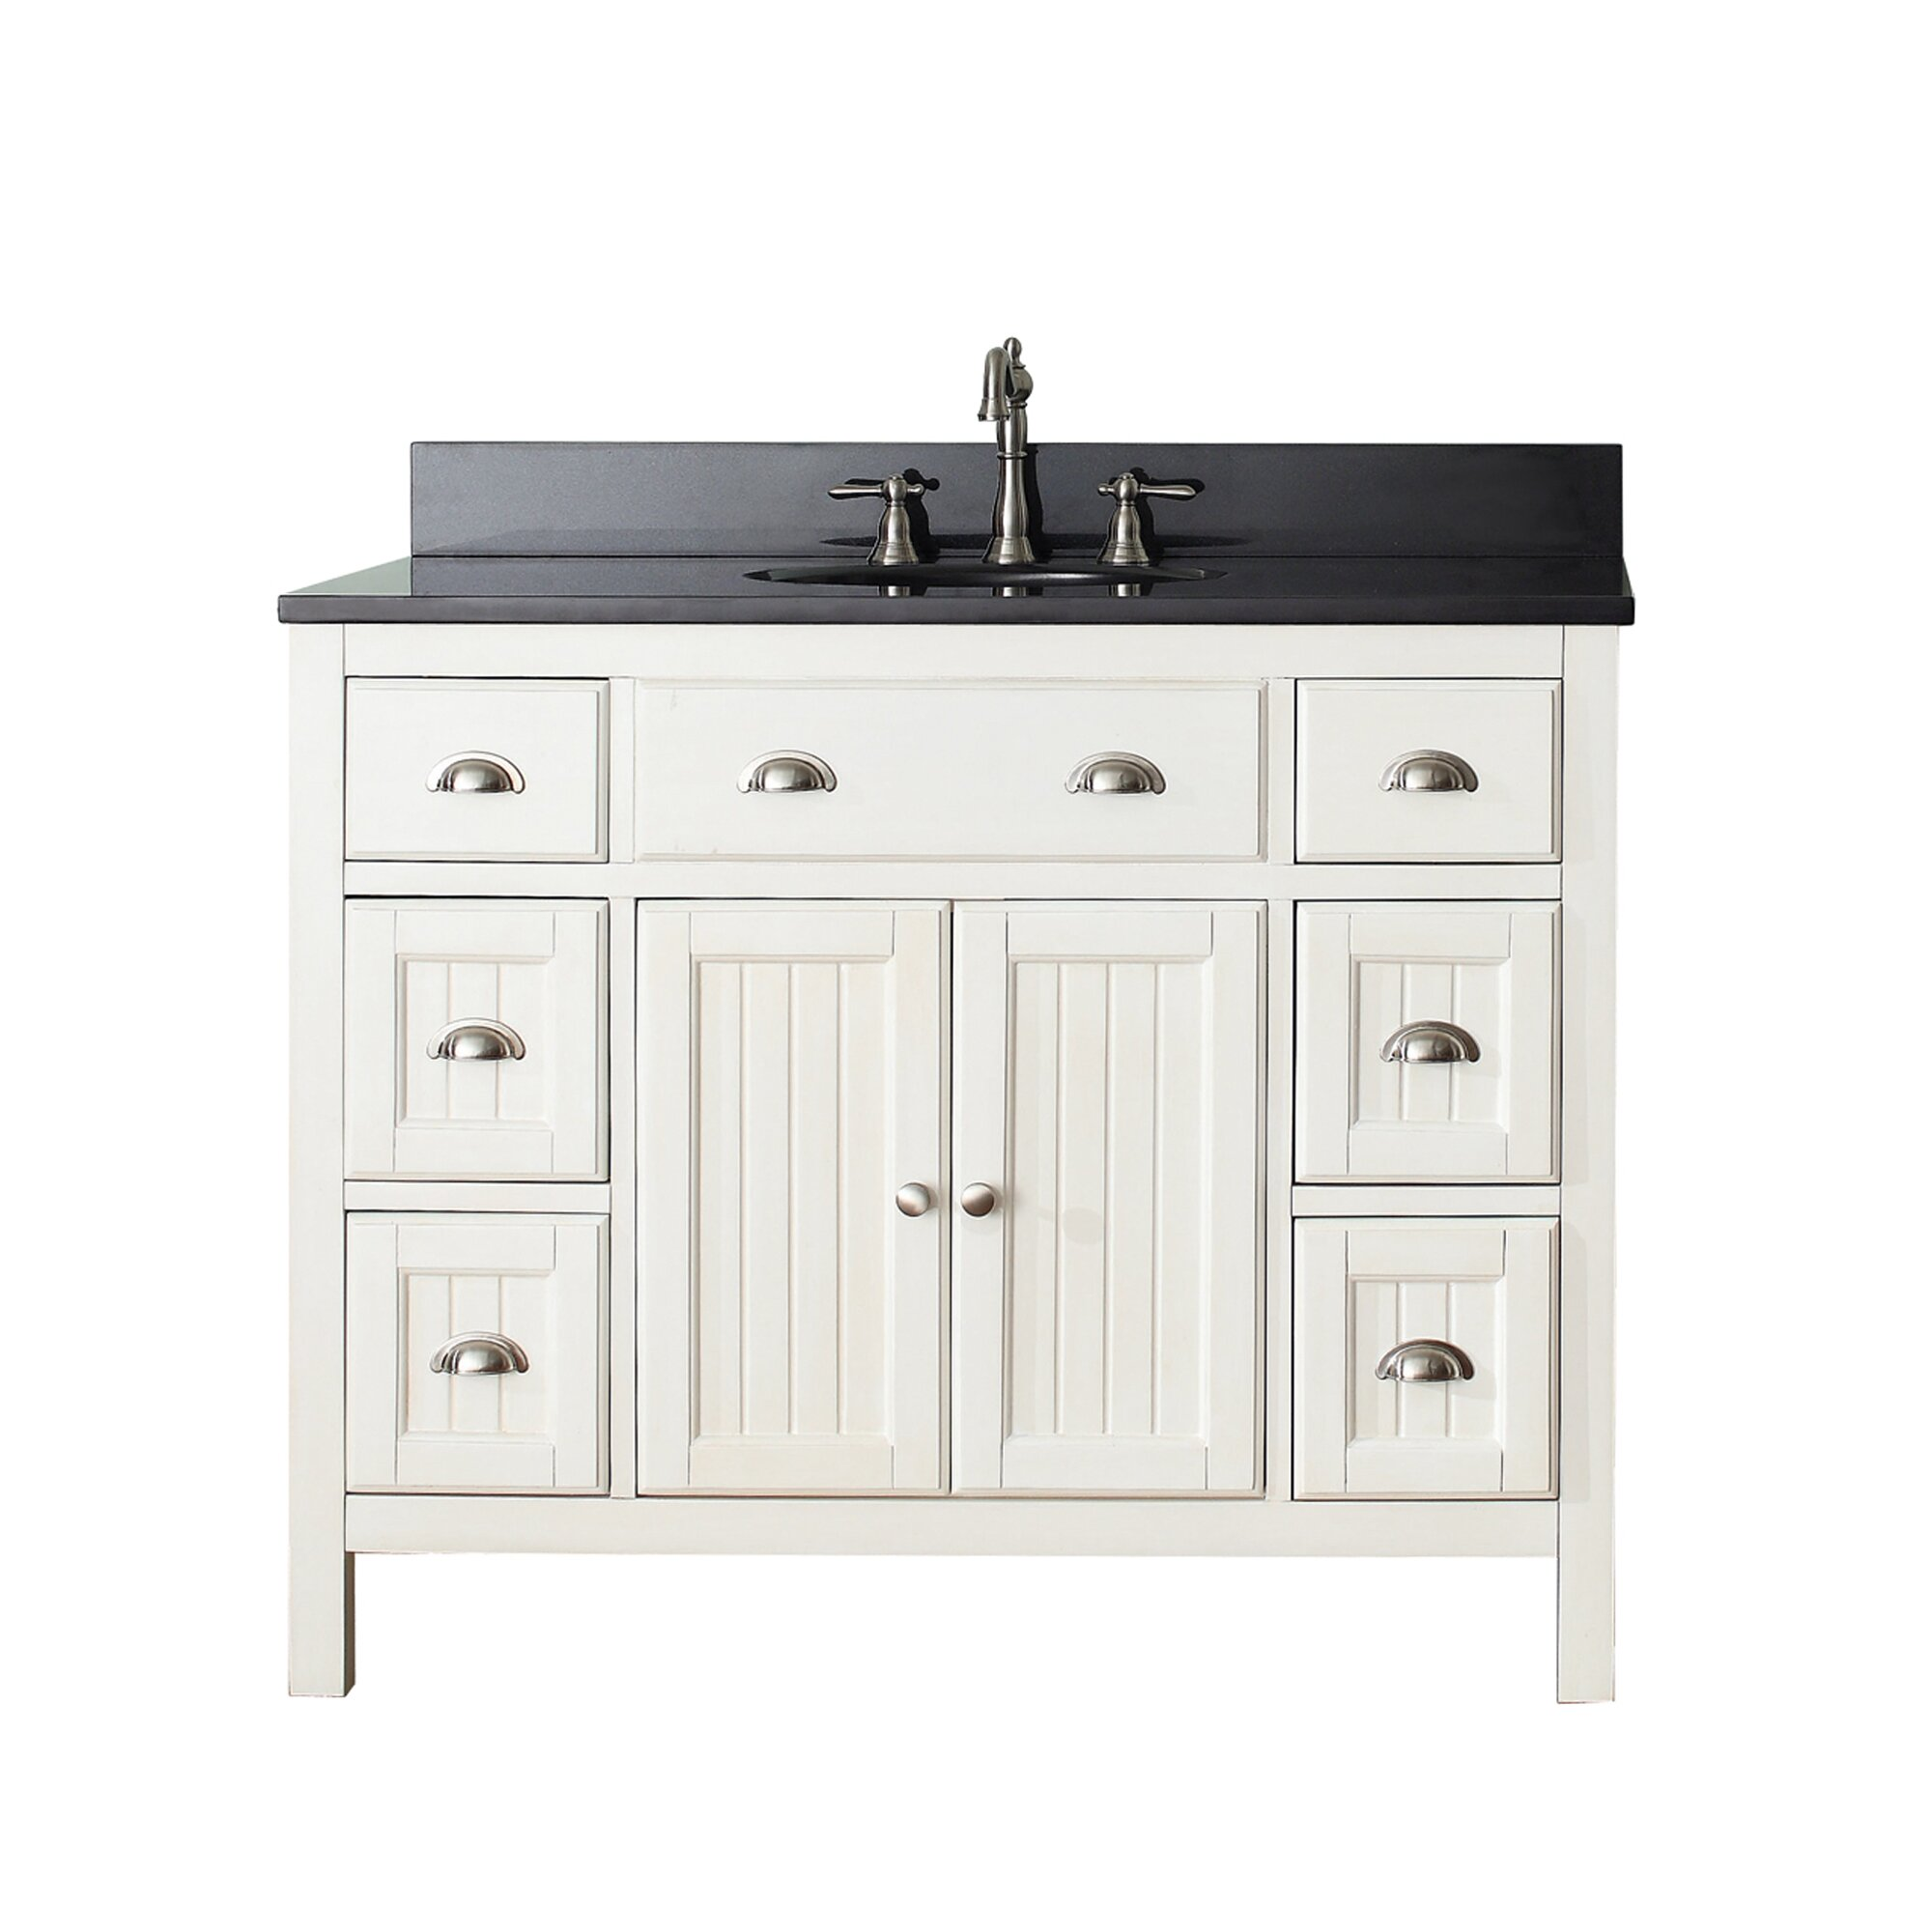 Wonderful 43 Bathroom Vanity #8: Avanity Hamilton 43u0026amp;quot; Single Bathroom Vanity Set